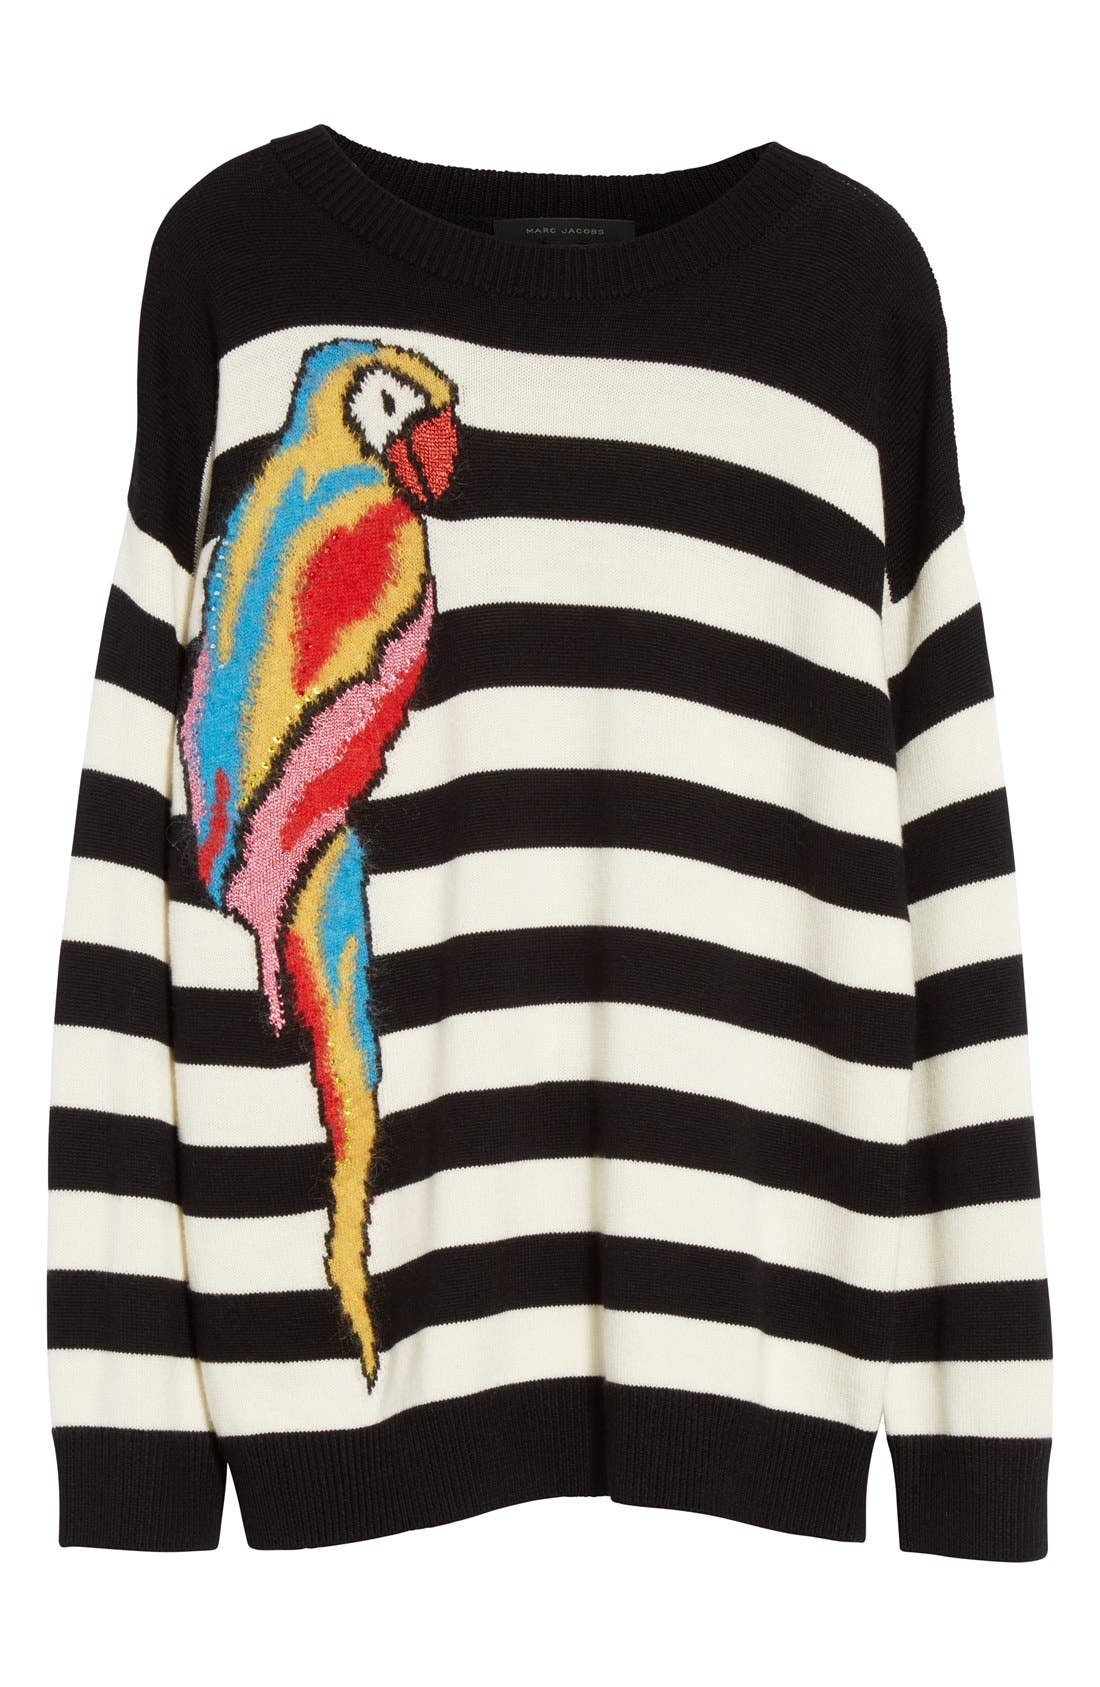 Alternate Image 4  - MARC JACOBS Parrot Jacquard Sweater